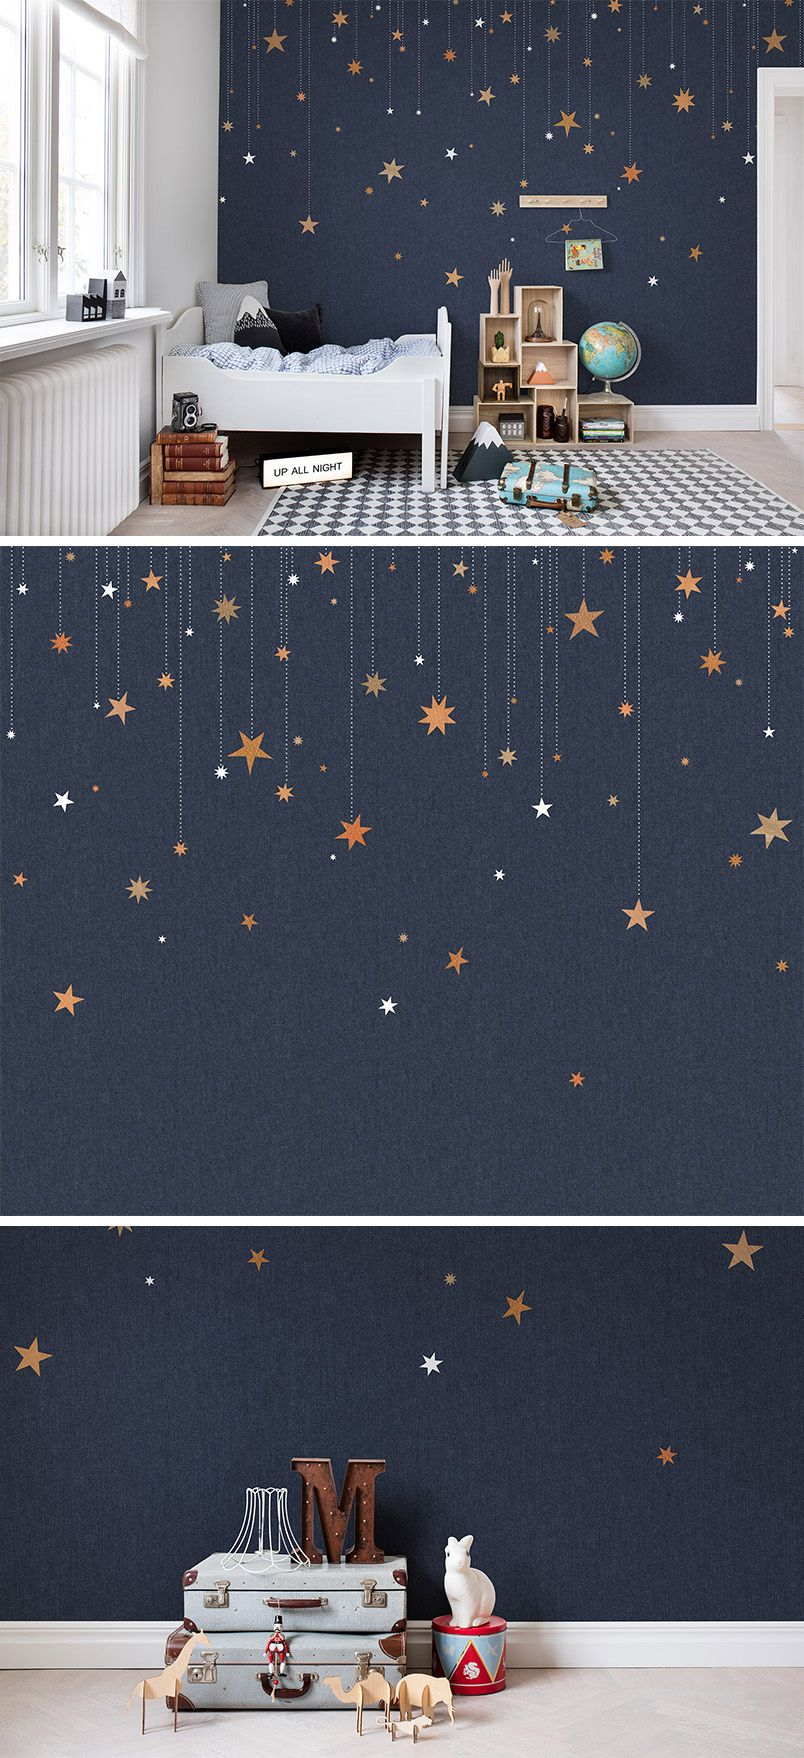 Stargazing In 2019 Dream Home Kids Room Kids Bedroom Baby Bedroom